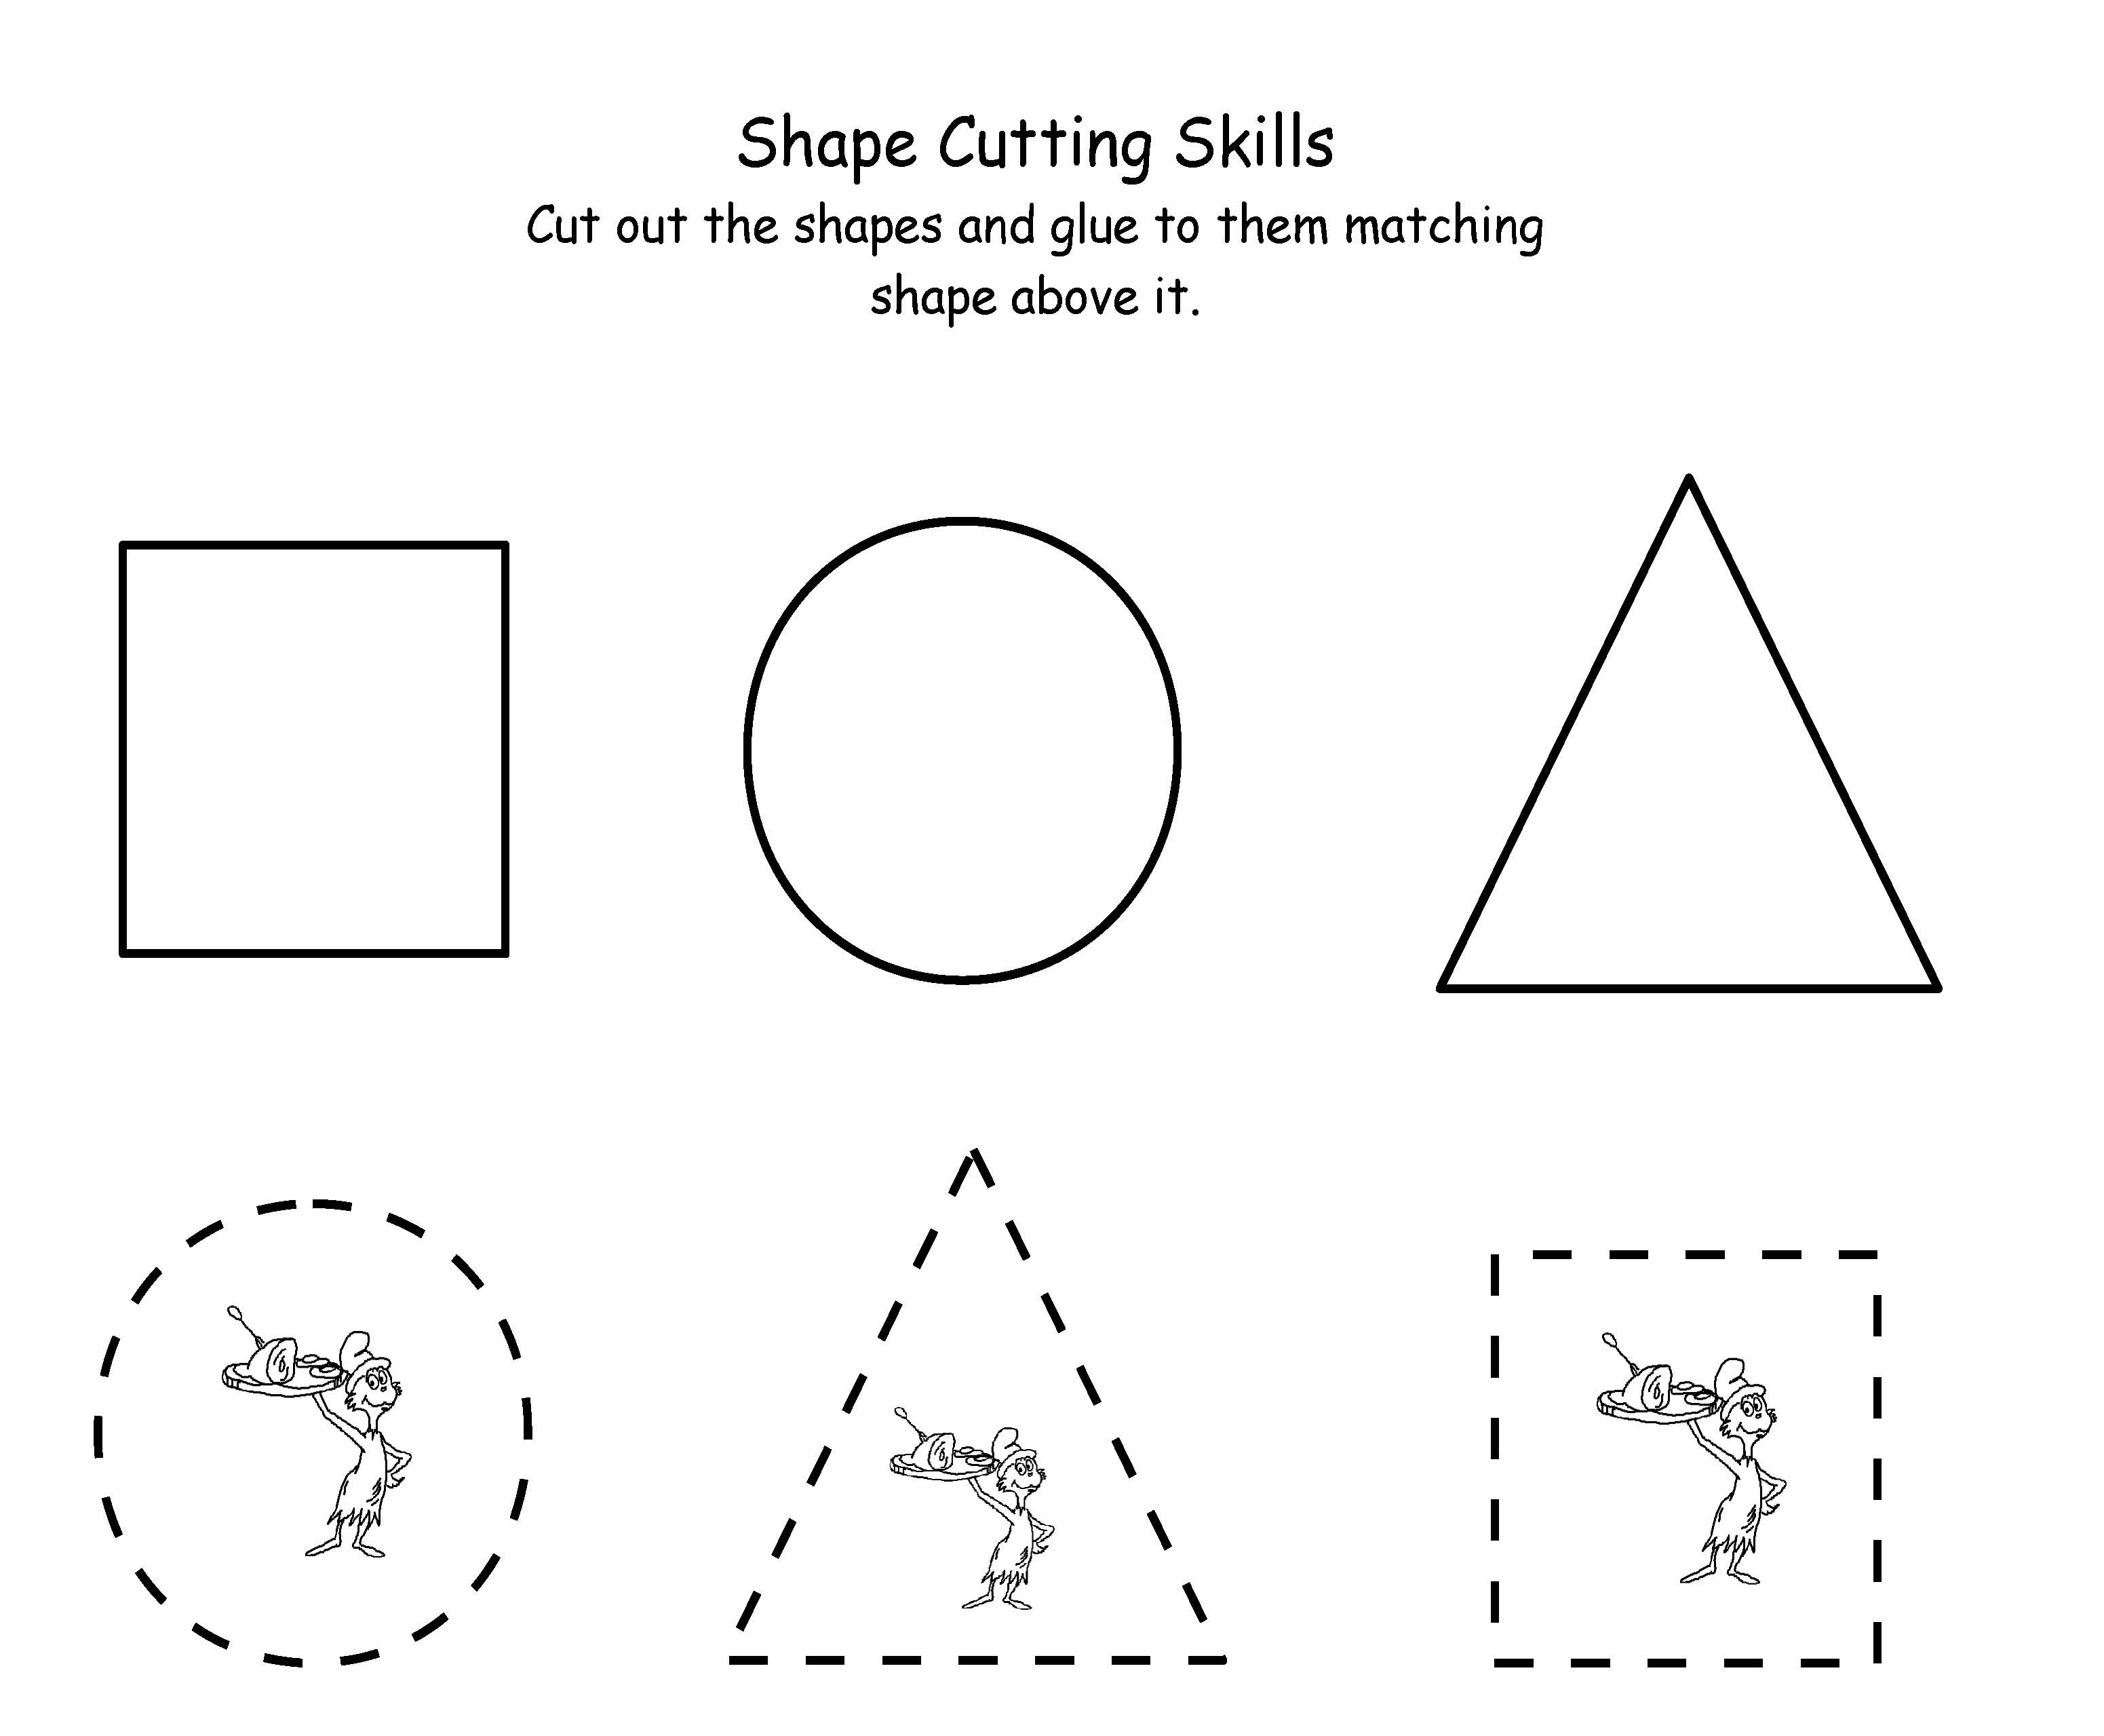 hippo coloring pages - printable shapes cut out